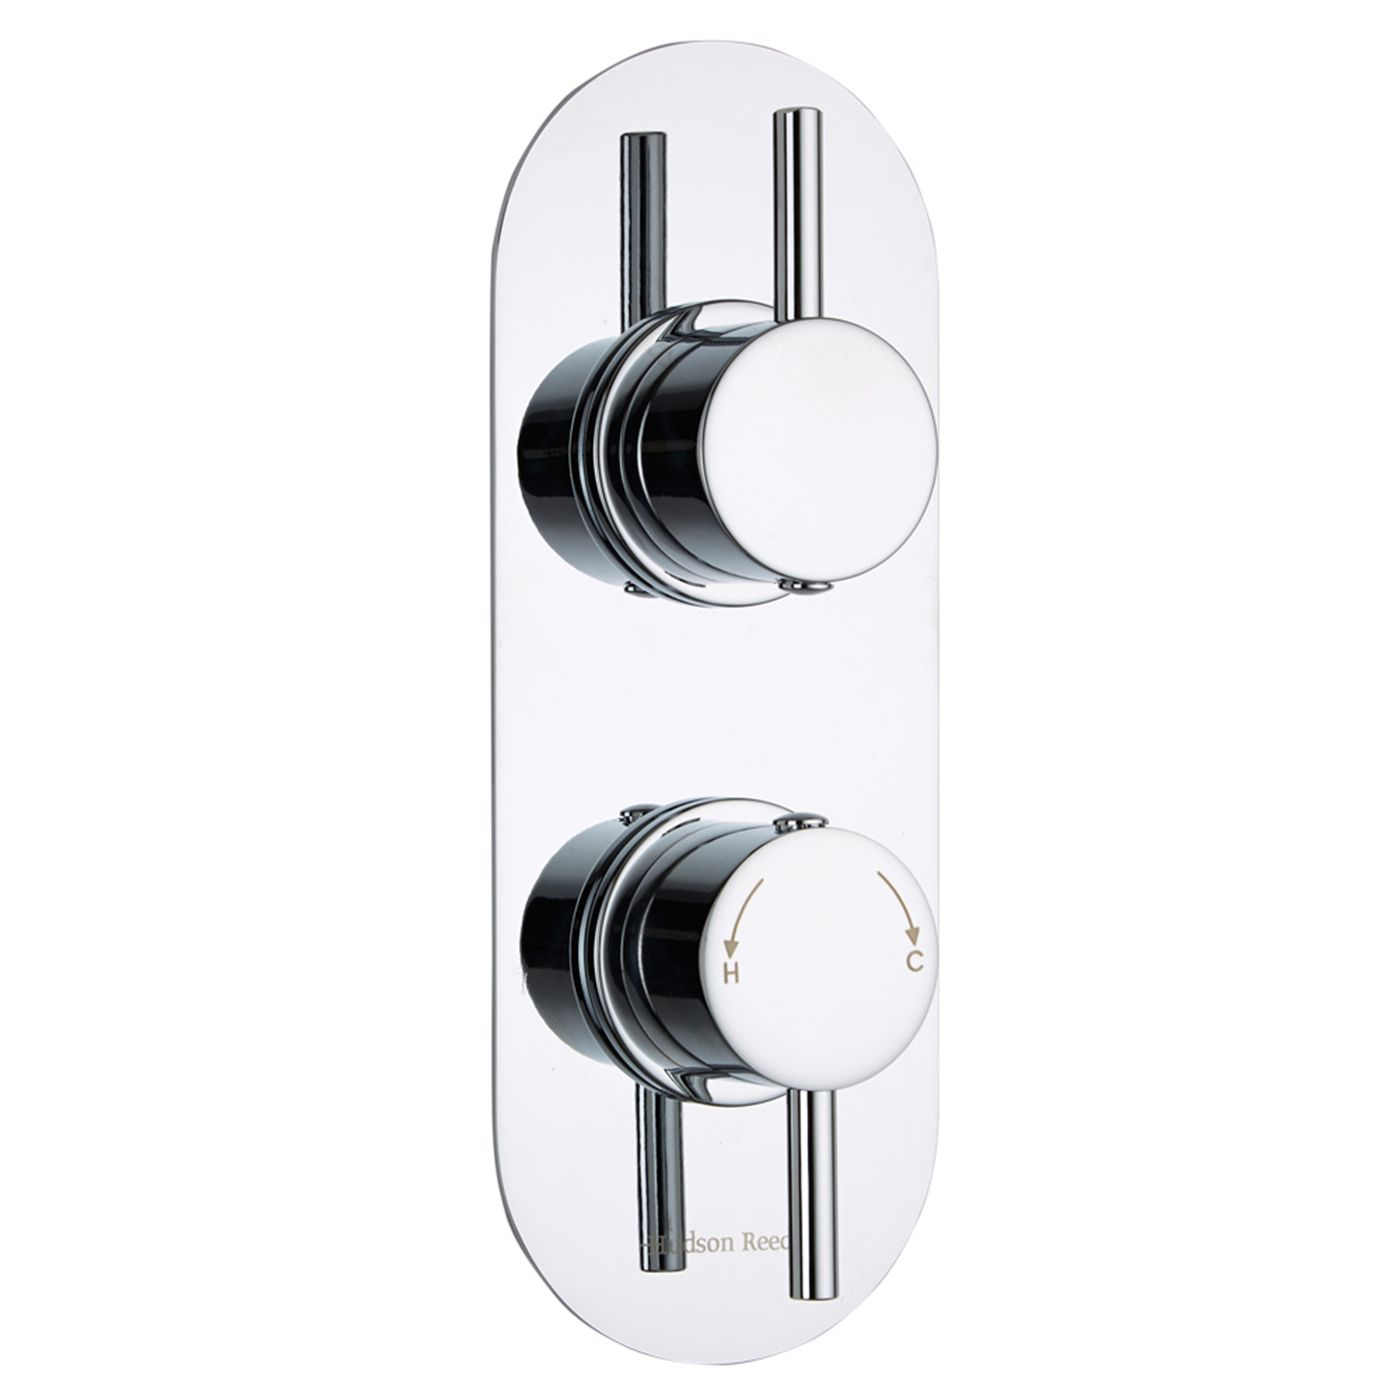 Quest Concealed 2 Outlet Twin with Diverter Thermostatic Shower Valve (Racetrack Plate)